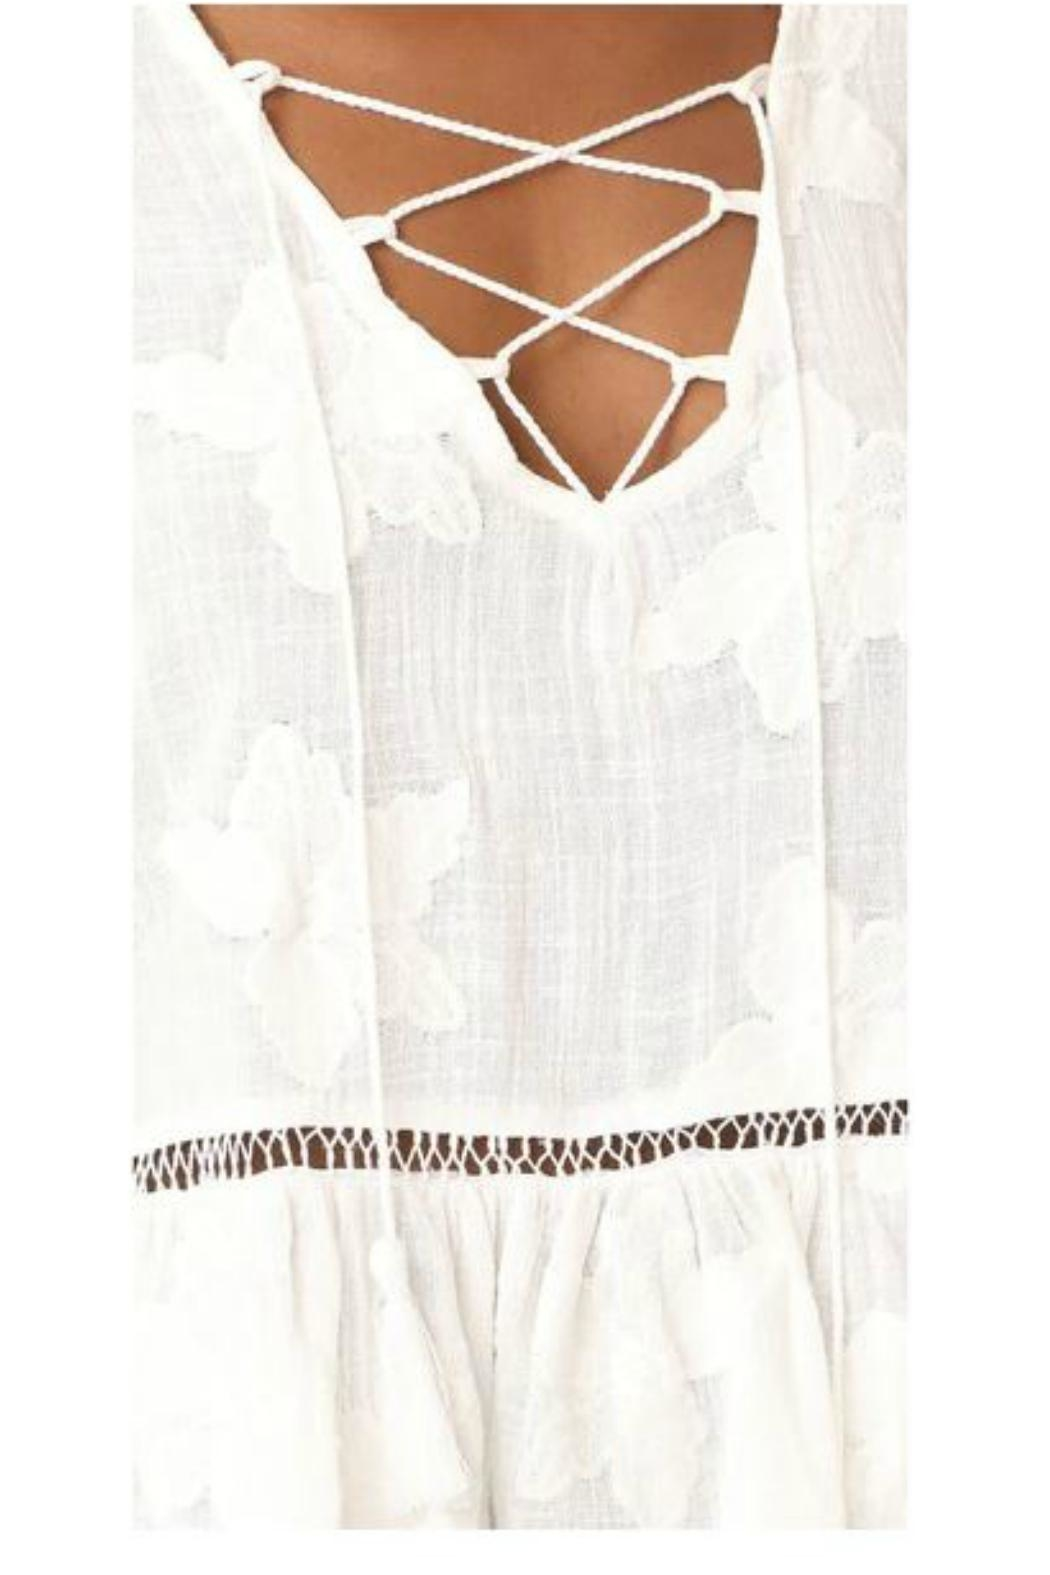 Liv Los Angeles Lace Up Top - Side Cropped Image